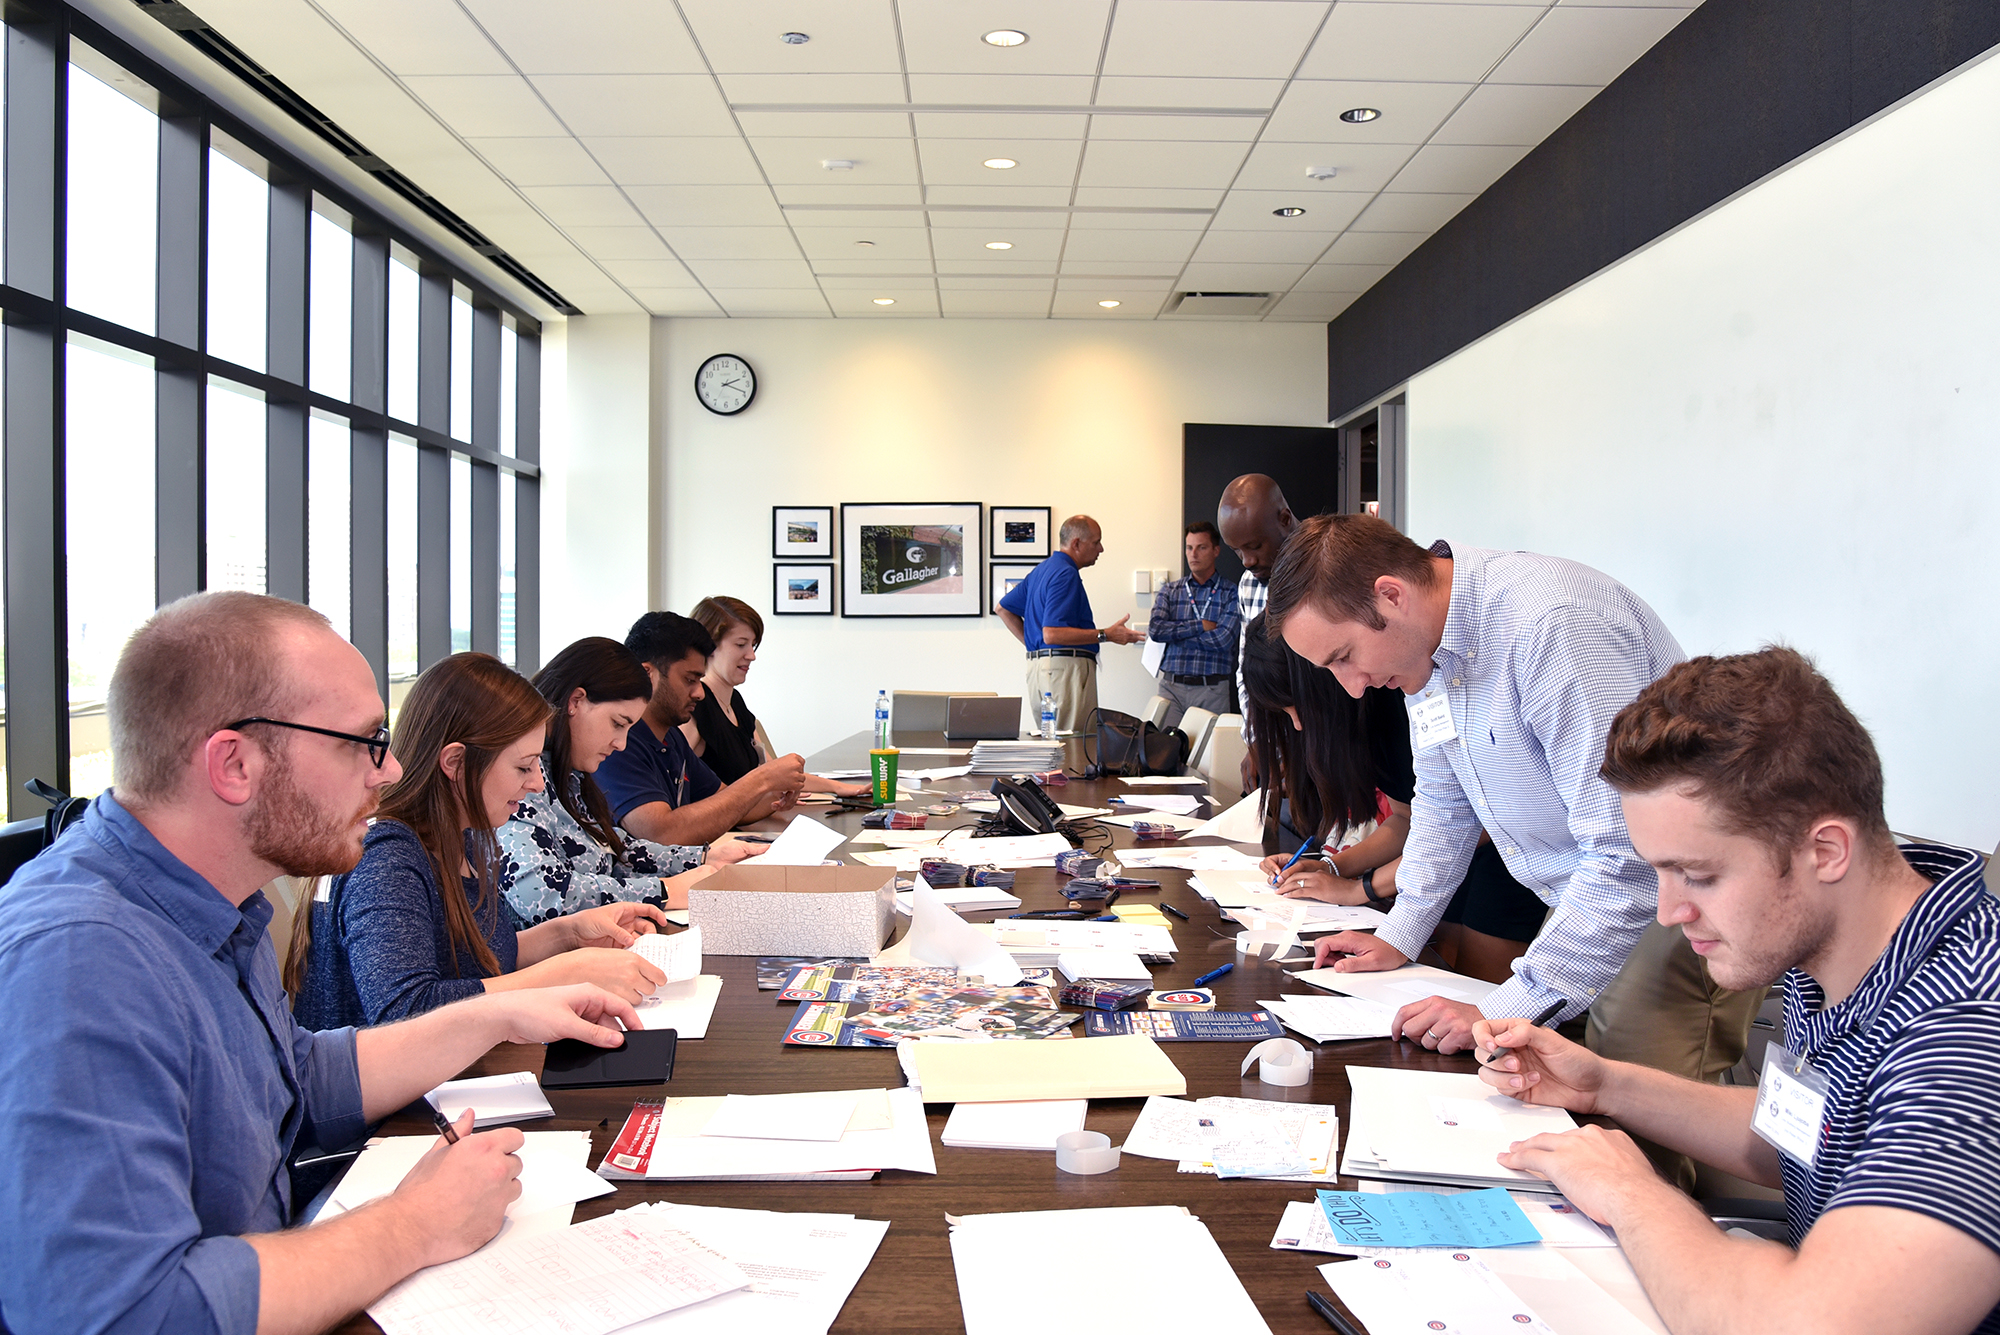 Students work in a conference room during the Cubs service class